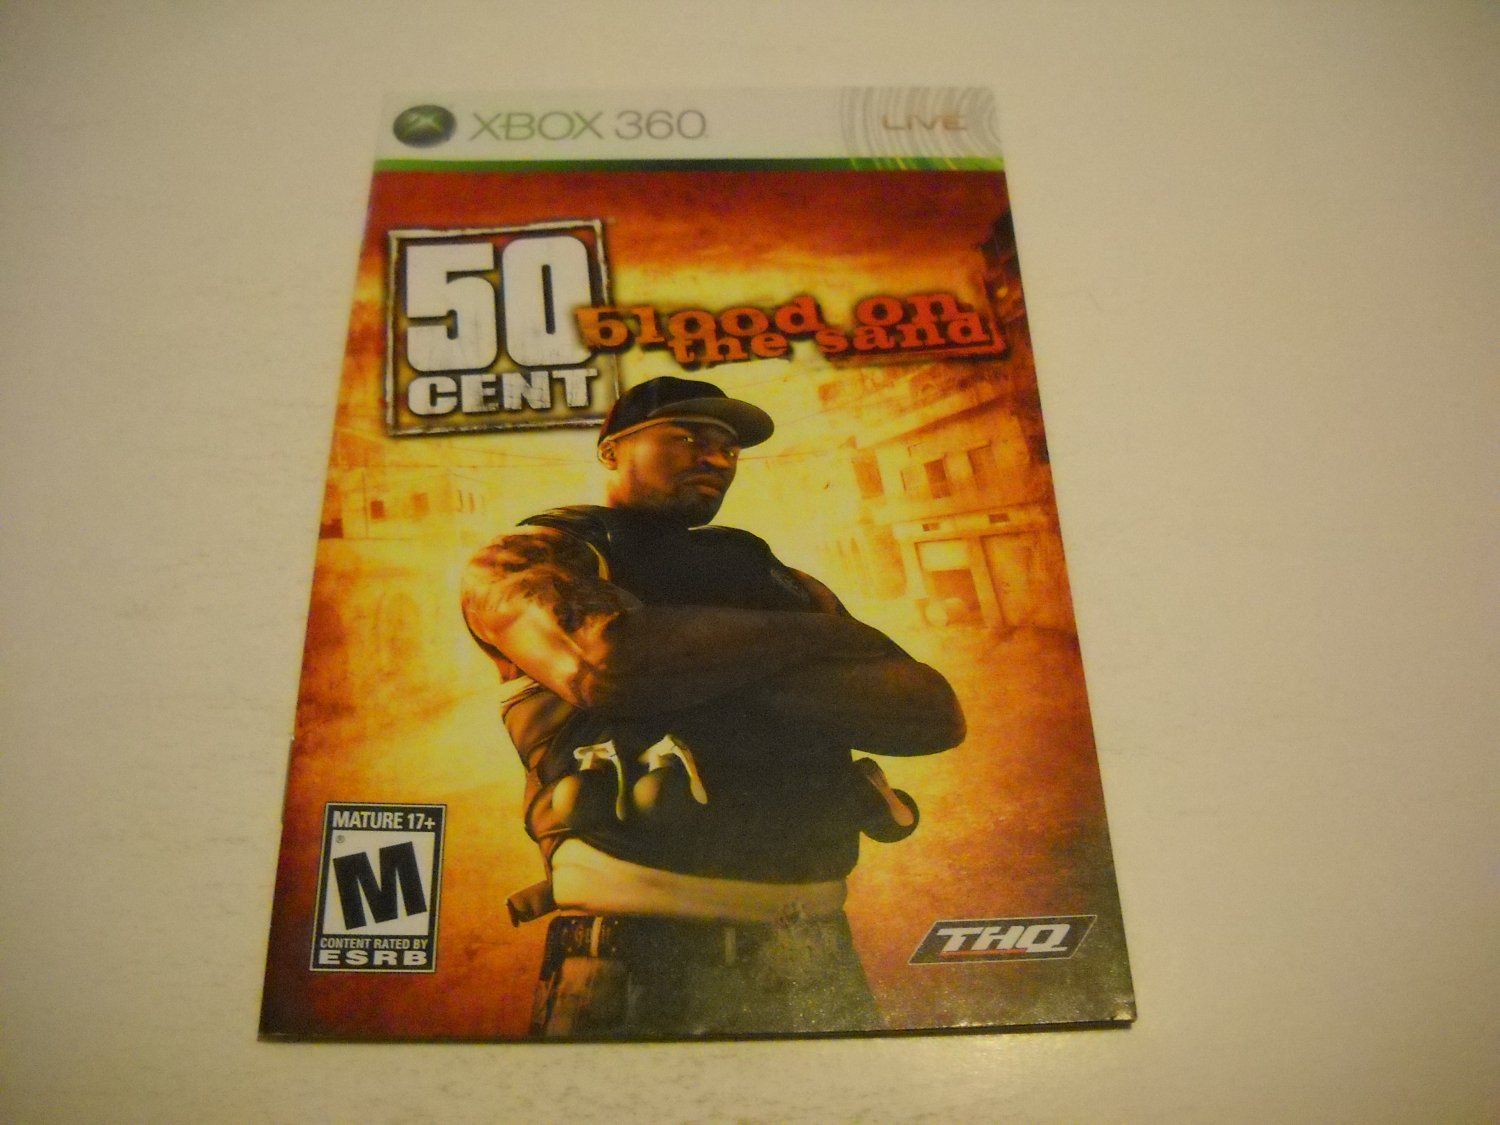 Manual ONLY ~  for 50 Cent Blood on the Sand   - Xbox 360 Instruction Booklet